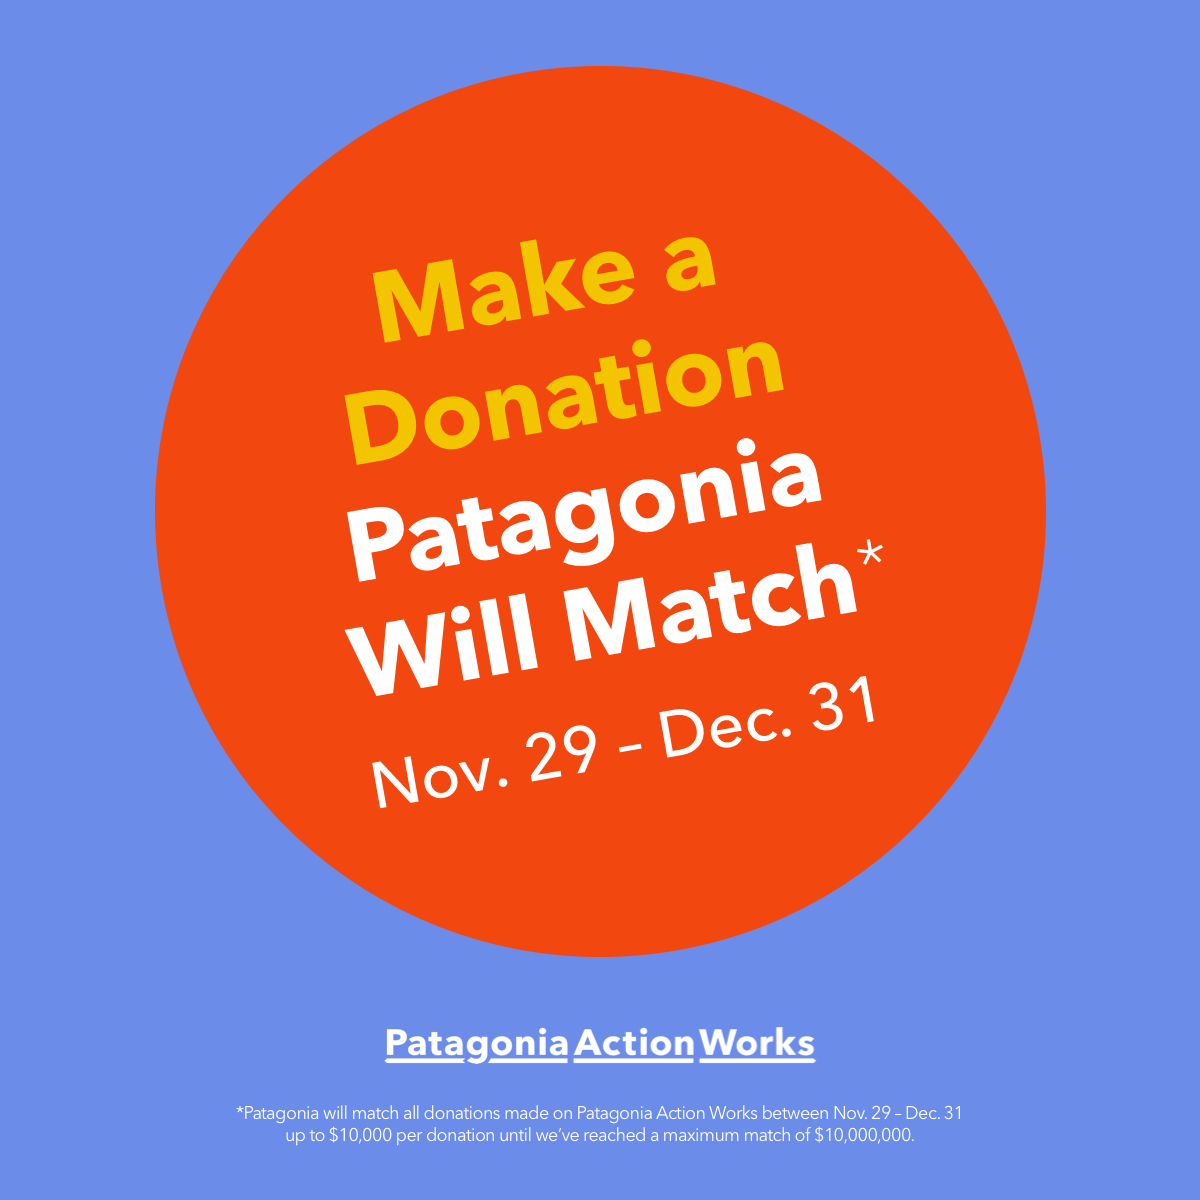 UPDATE: Patagonia just informed us that their match is already over halfway to their $10 million donation cap. We are far from our year end goal so please don't miss your chance to double your impact! Contribute before the end of the week: patagonia.com/actionworks/gr…